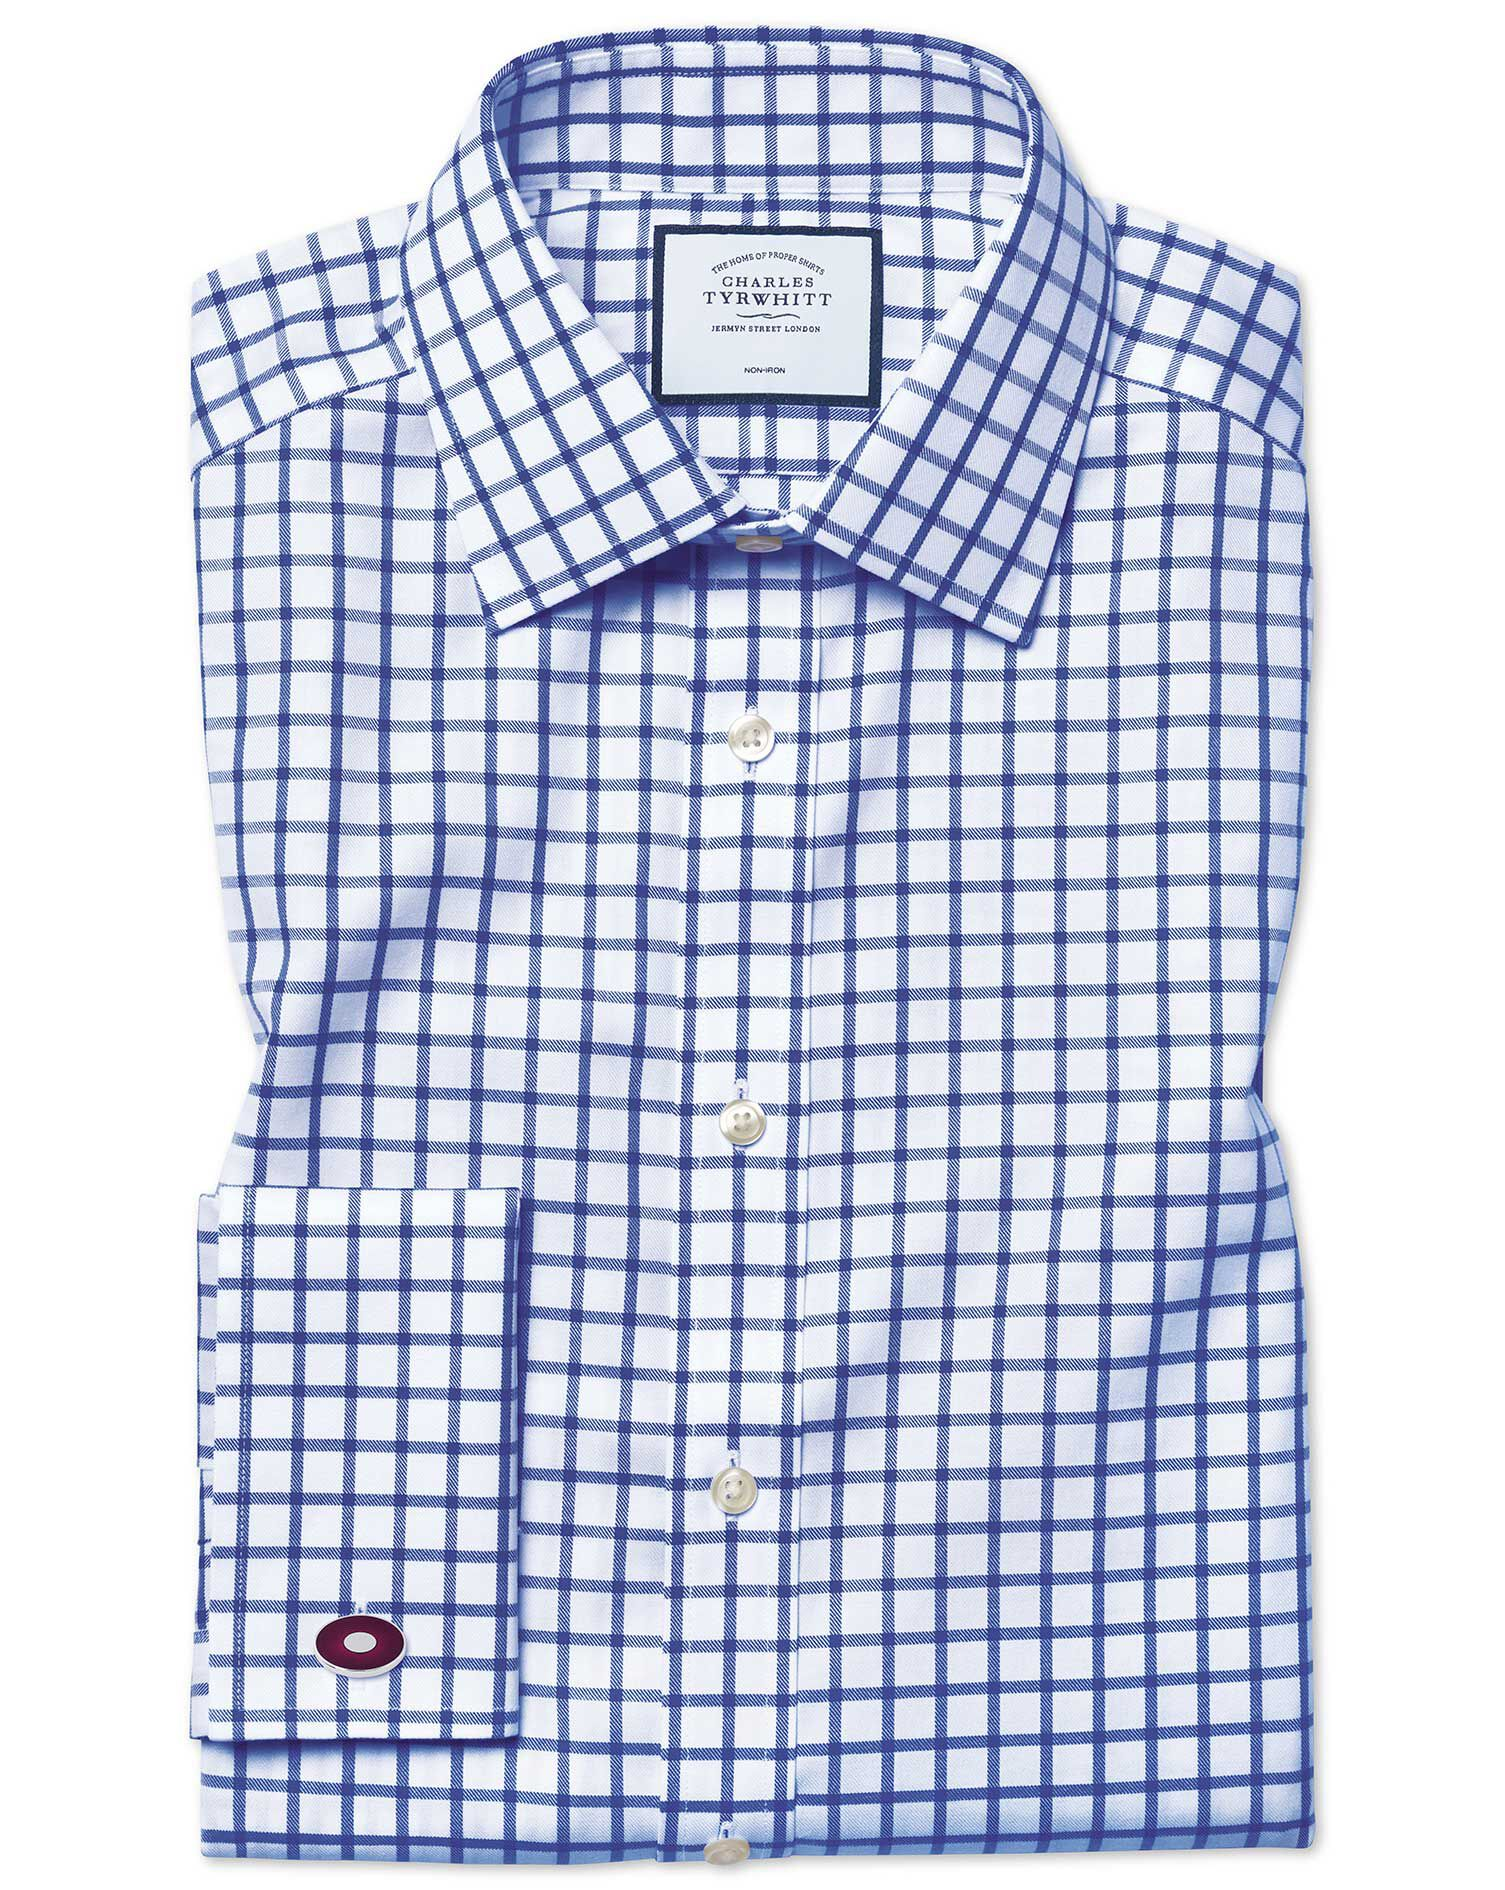 Classic Fit Non-Iron Twill Grid Check Royal Blue Cotton Formal Shirt Double Cuff Size 16.5/38 by Cha